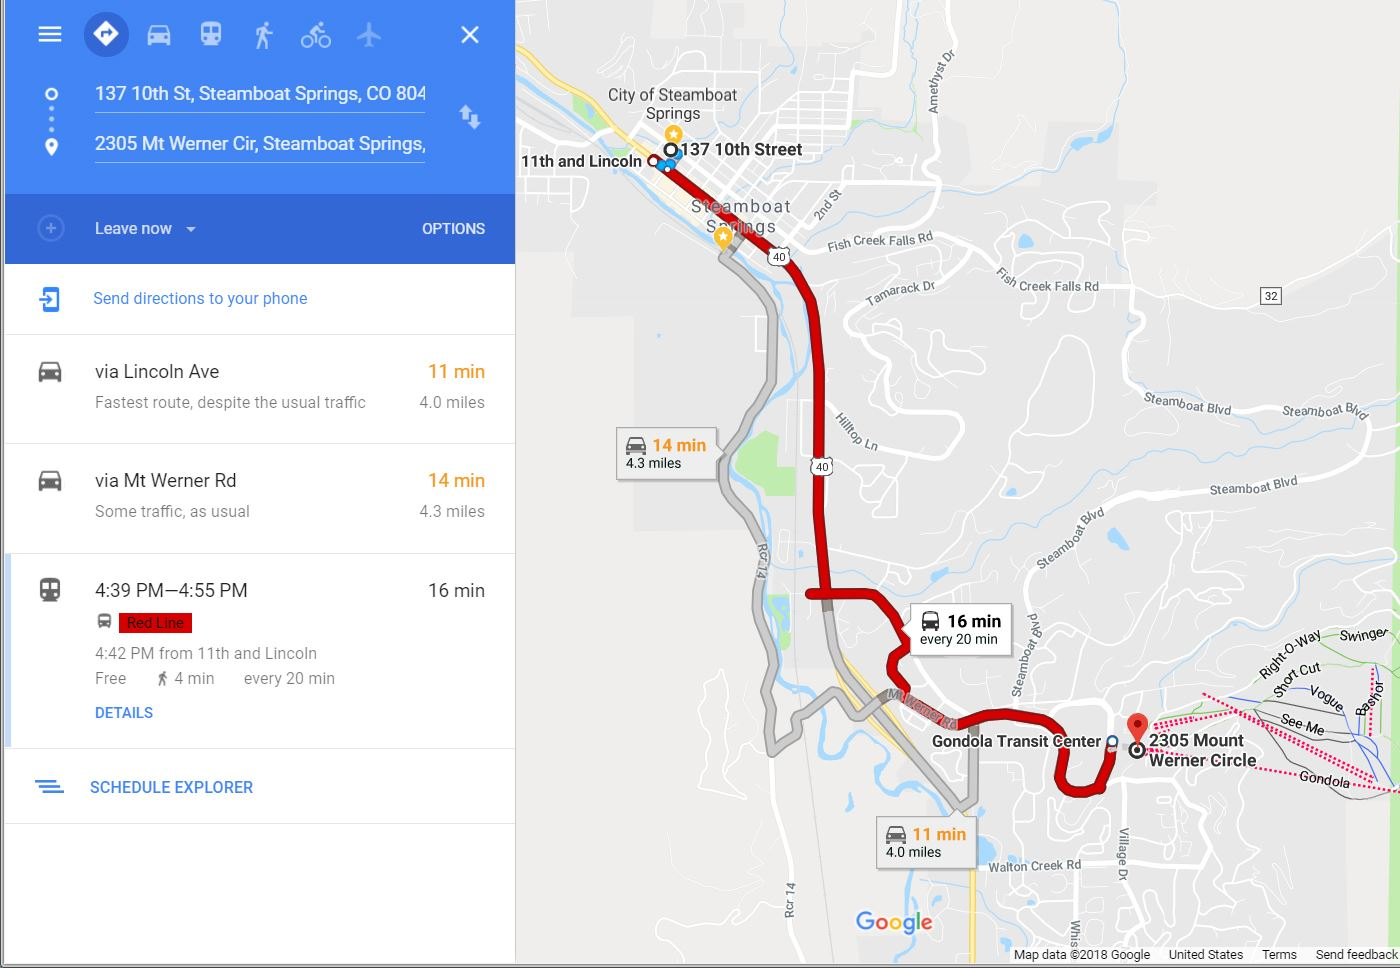 Google Maps | Steamboat Springs, CO - Official Website on funny google directions, bing get directions, i need to get directions, google business card, get walking directions, google earth street view, maps and directions, google us time zones map, google mapquest,